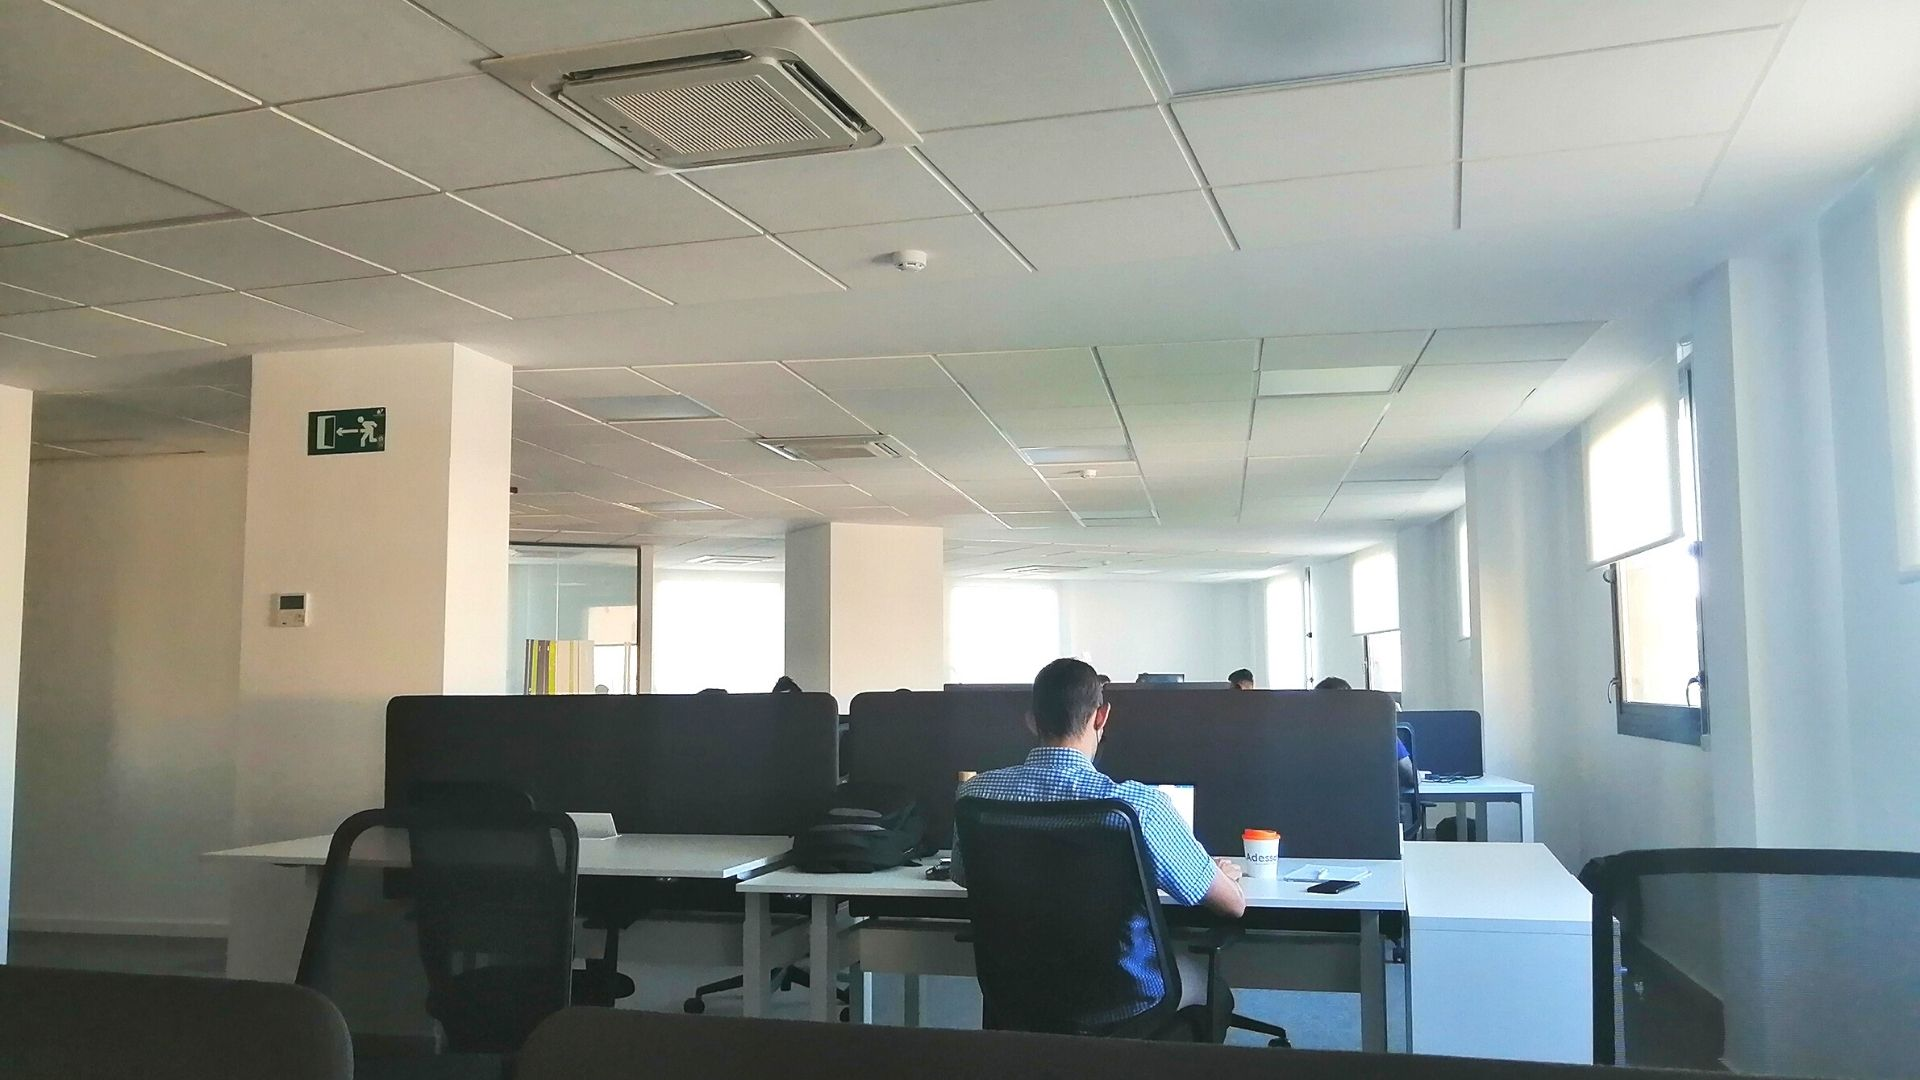 Our new Adessa office in Malaga is open! - desks